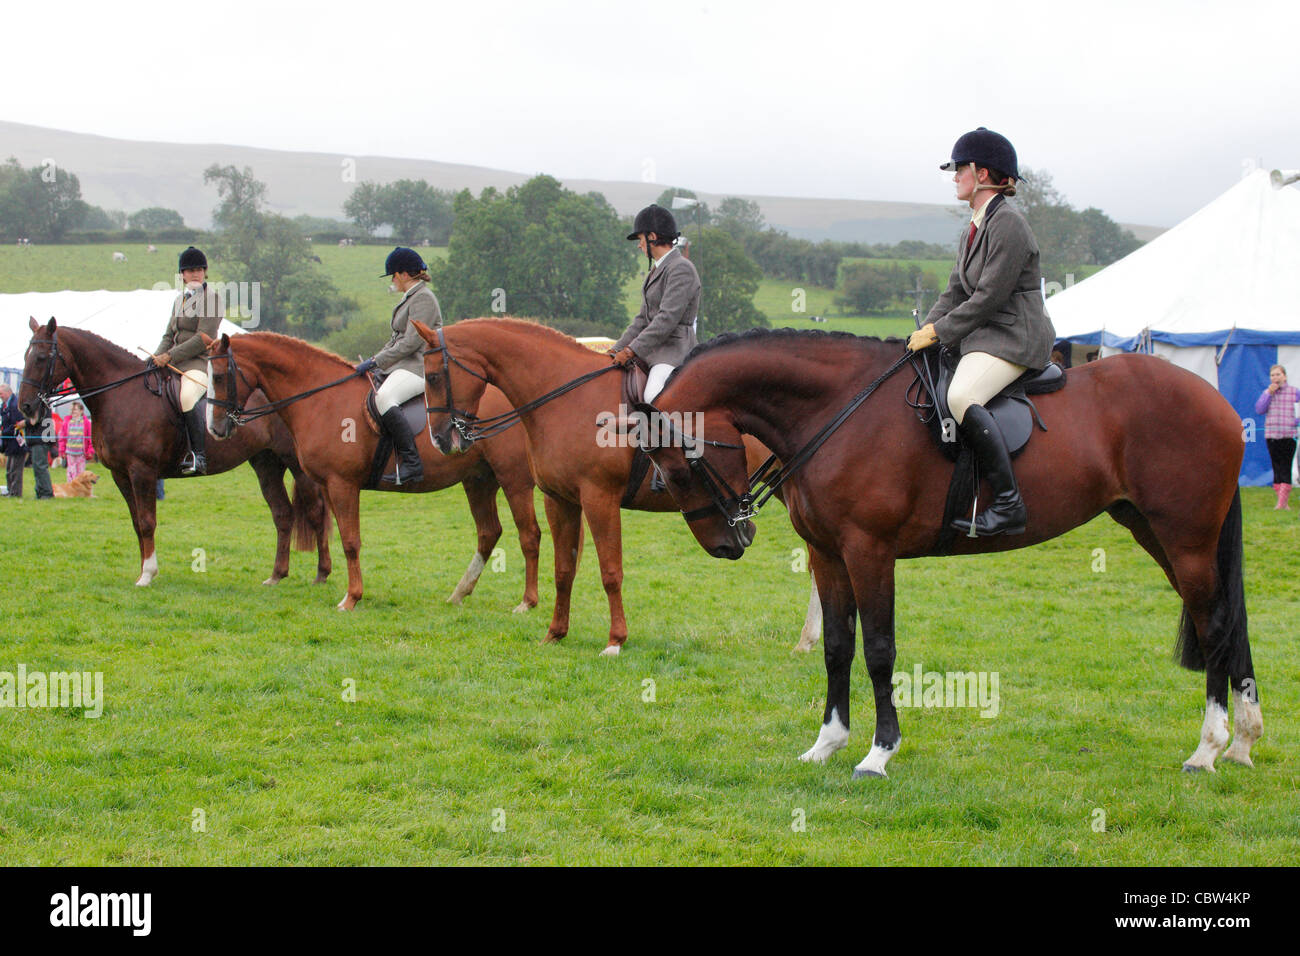 Line of Horses and riders on the show ground at Hesket Newmarket Agricultural Society Show, Cumbria, England, UK - Stock Image